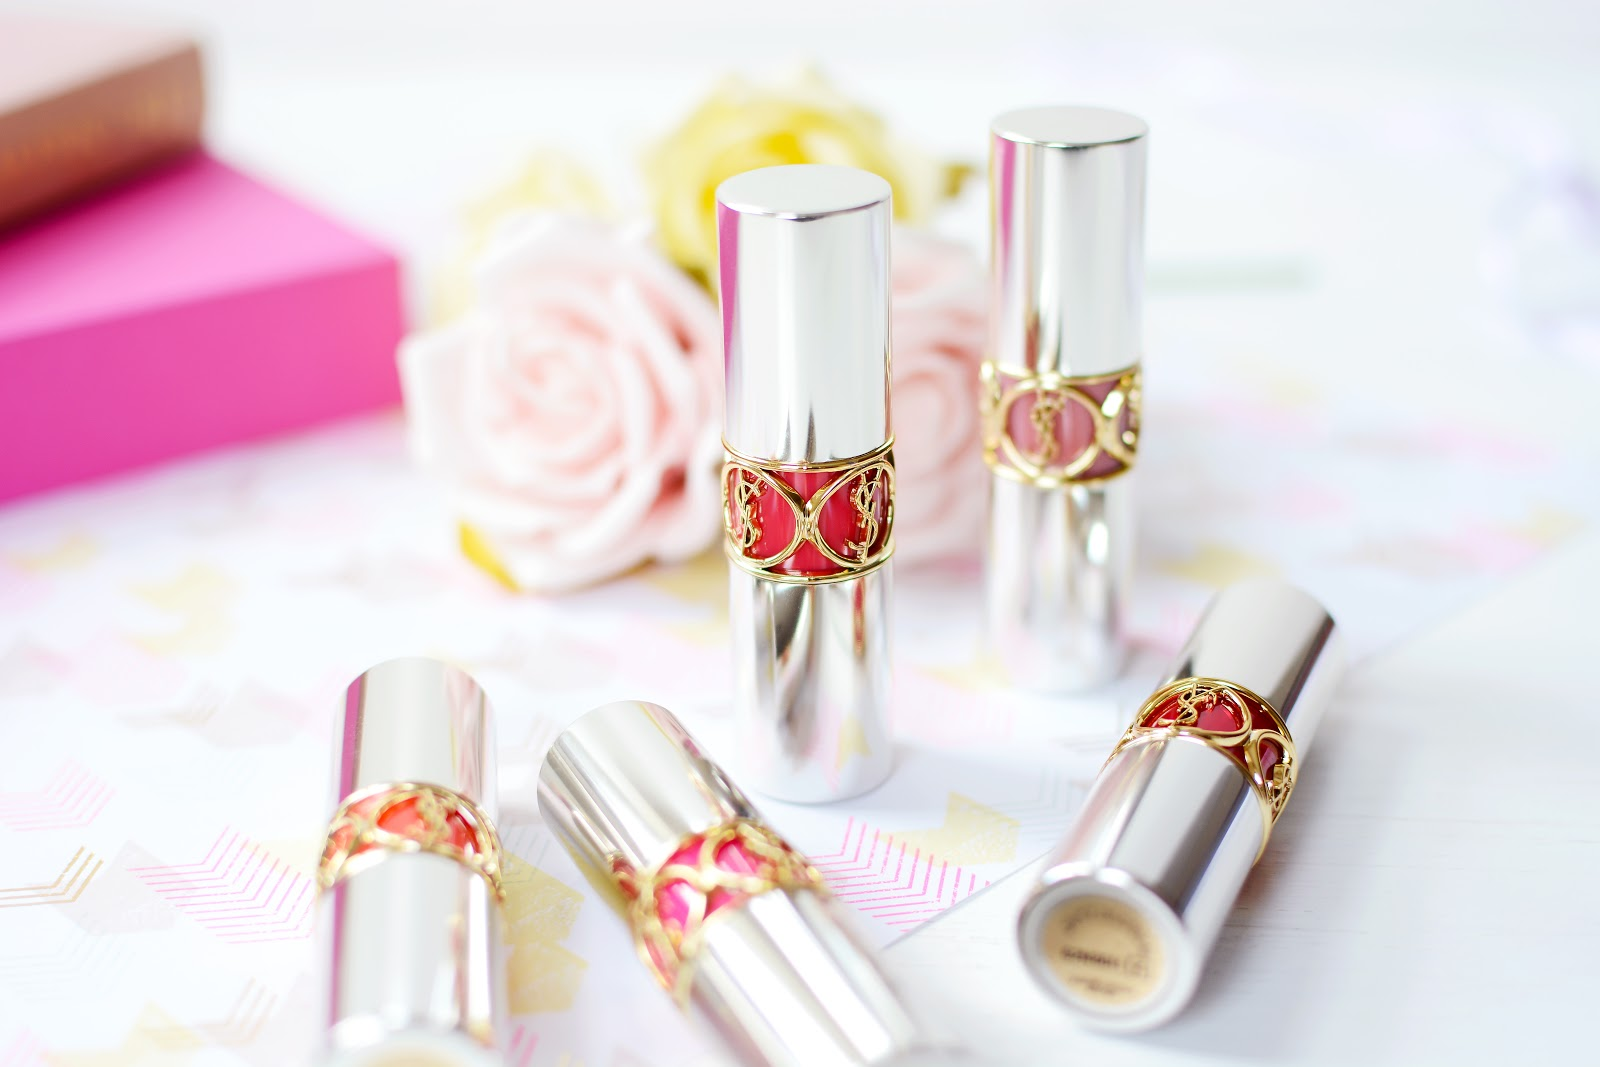 YSL Beauty Volupte Tint-In-Balm review